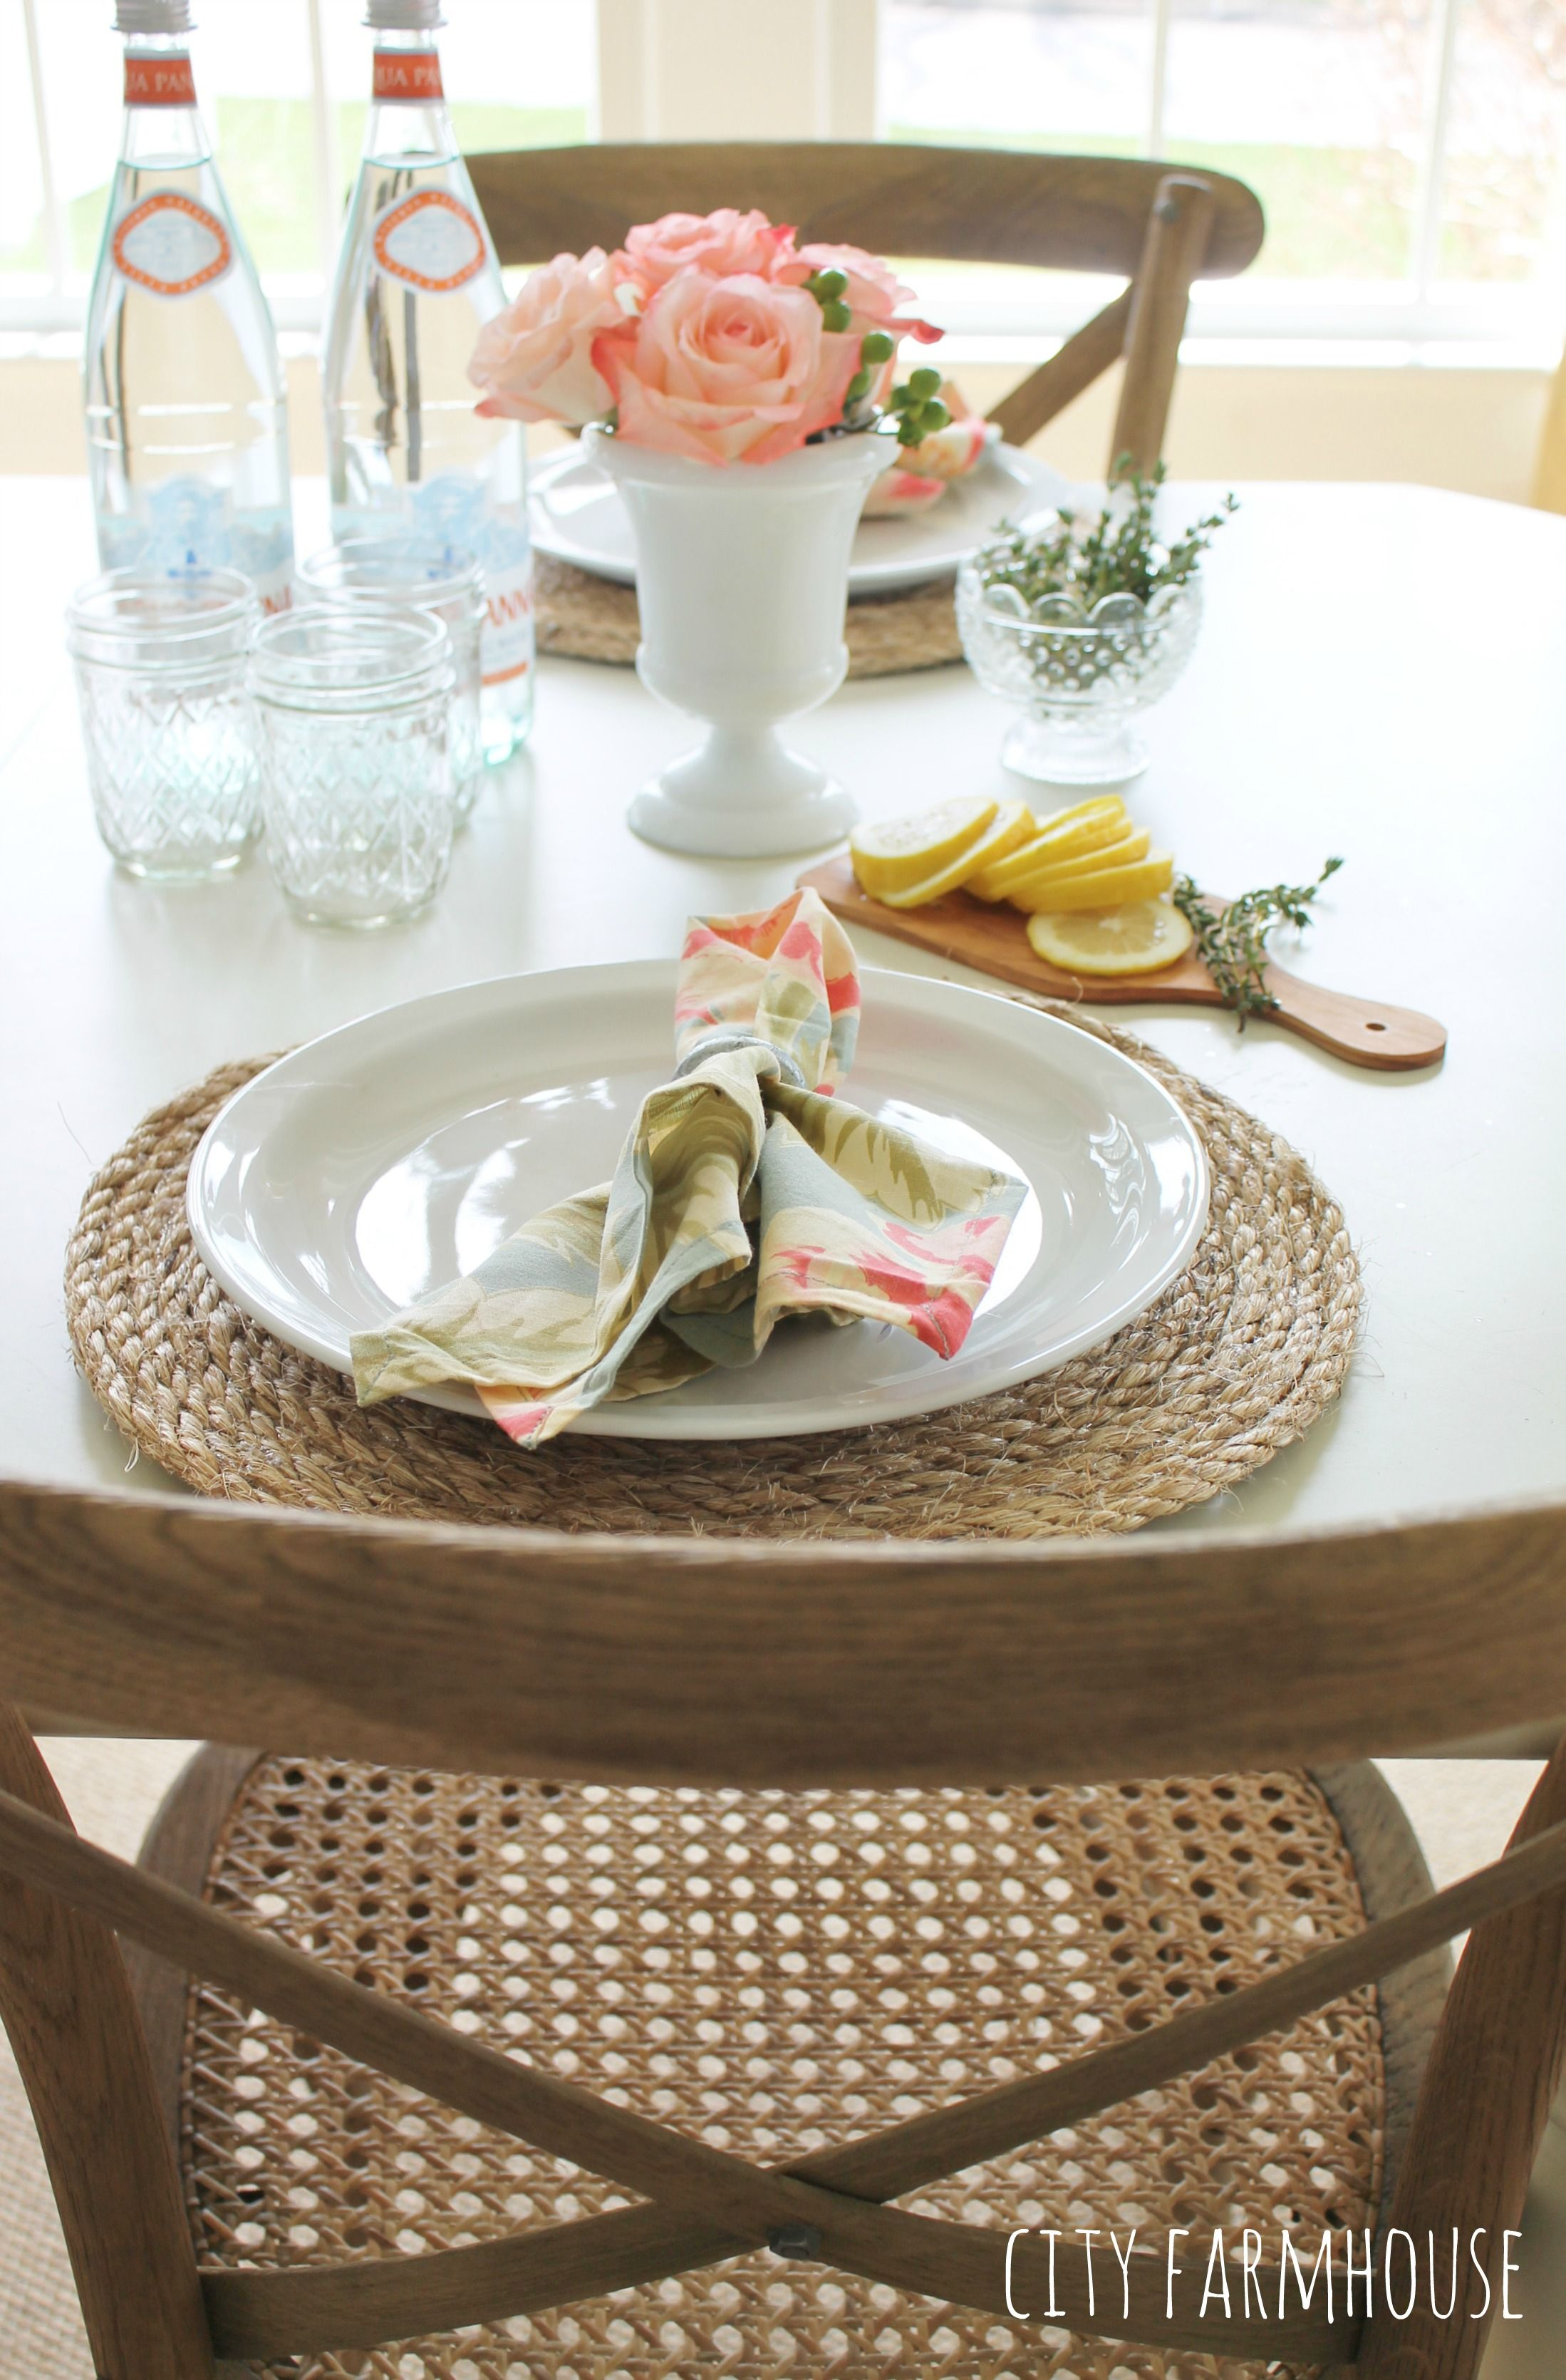 Good Pottery Barn Inspired DIY Jute Placemats Perfect For Summer Entertaining